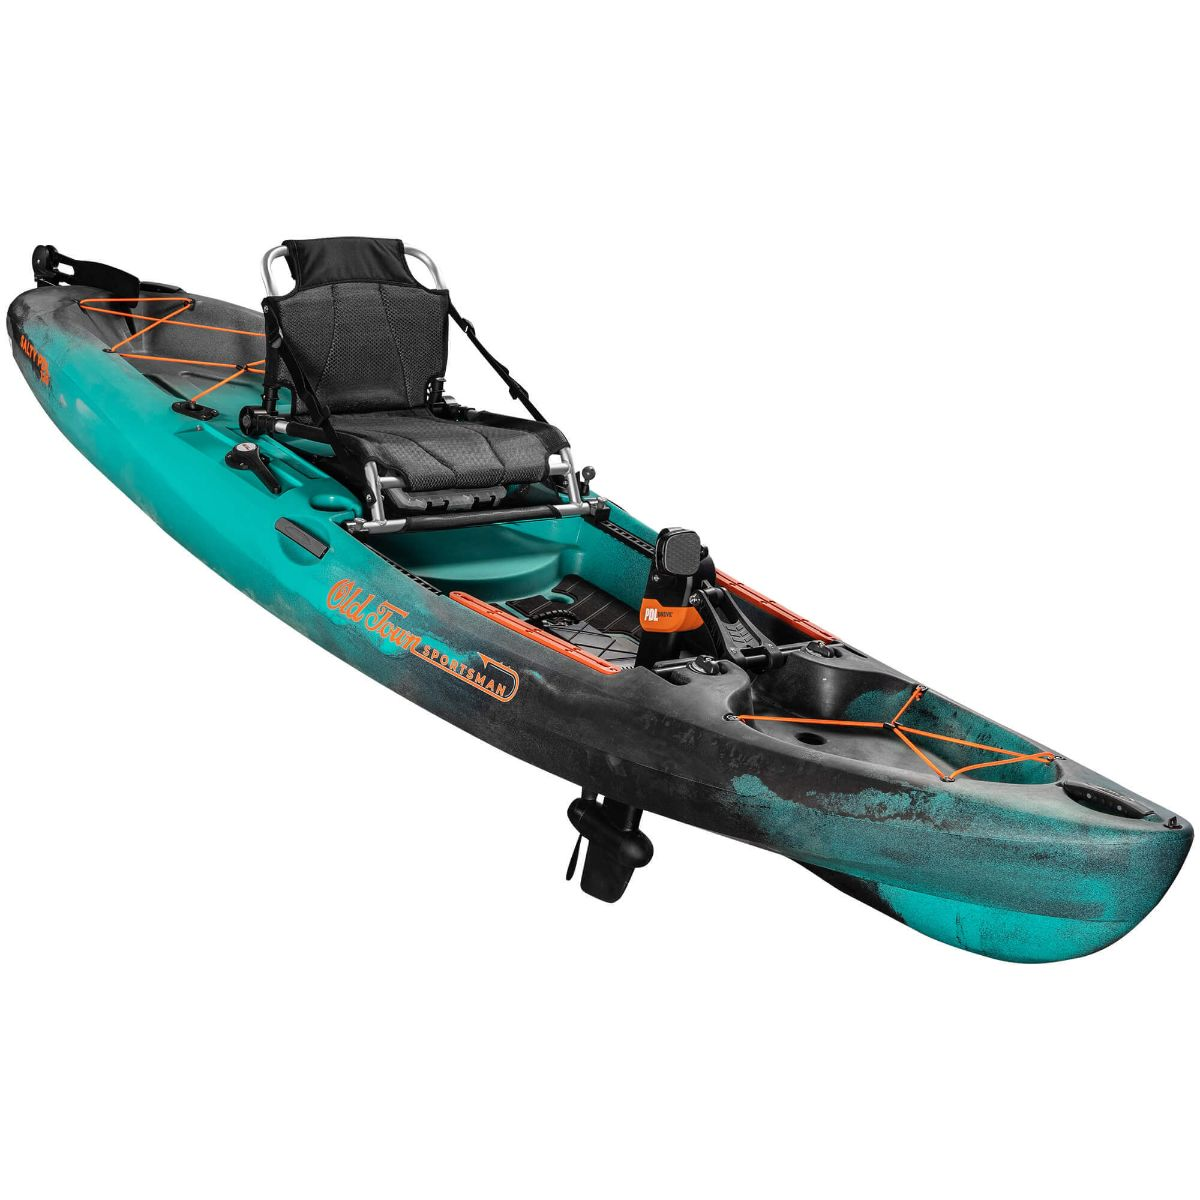 2022 Old Town Canoes and Kayaks Sportsman Salty PDL 120